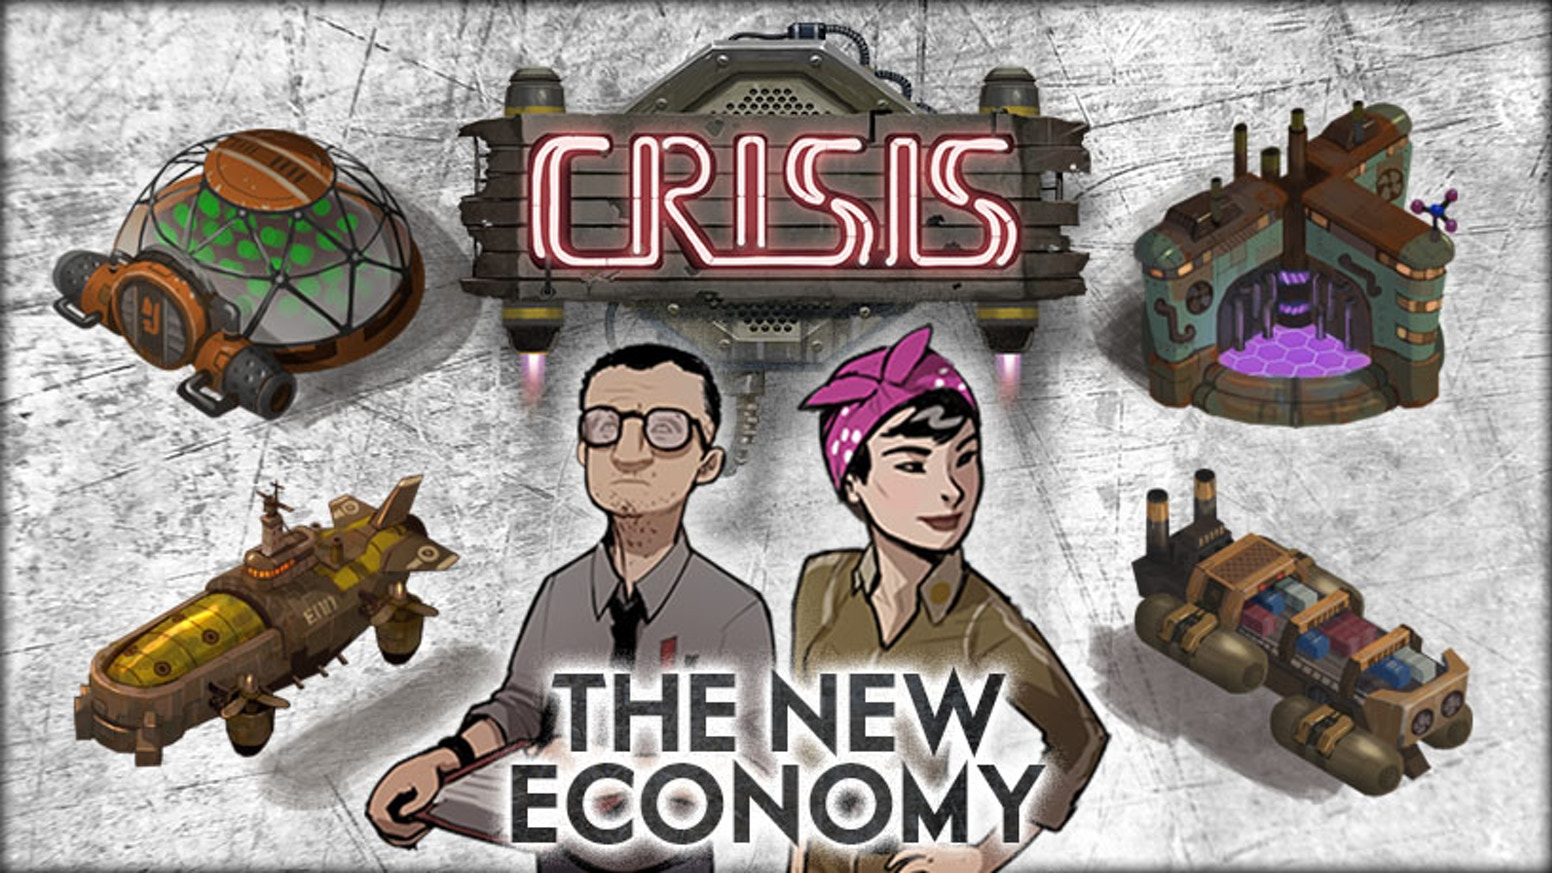 Build your empire in the dieselpunk world of Crisis! A campaign for the first expansion and a reprint of the deluxe edition.